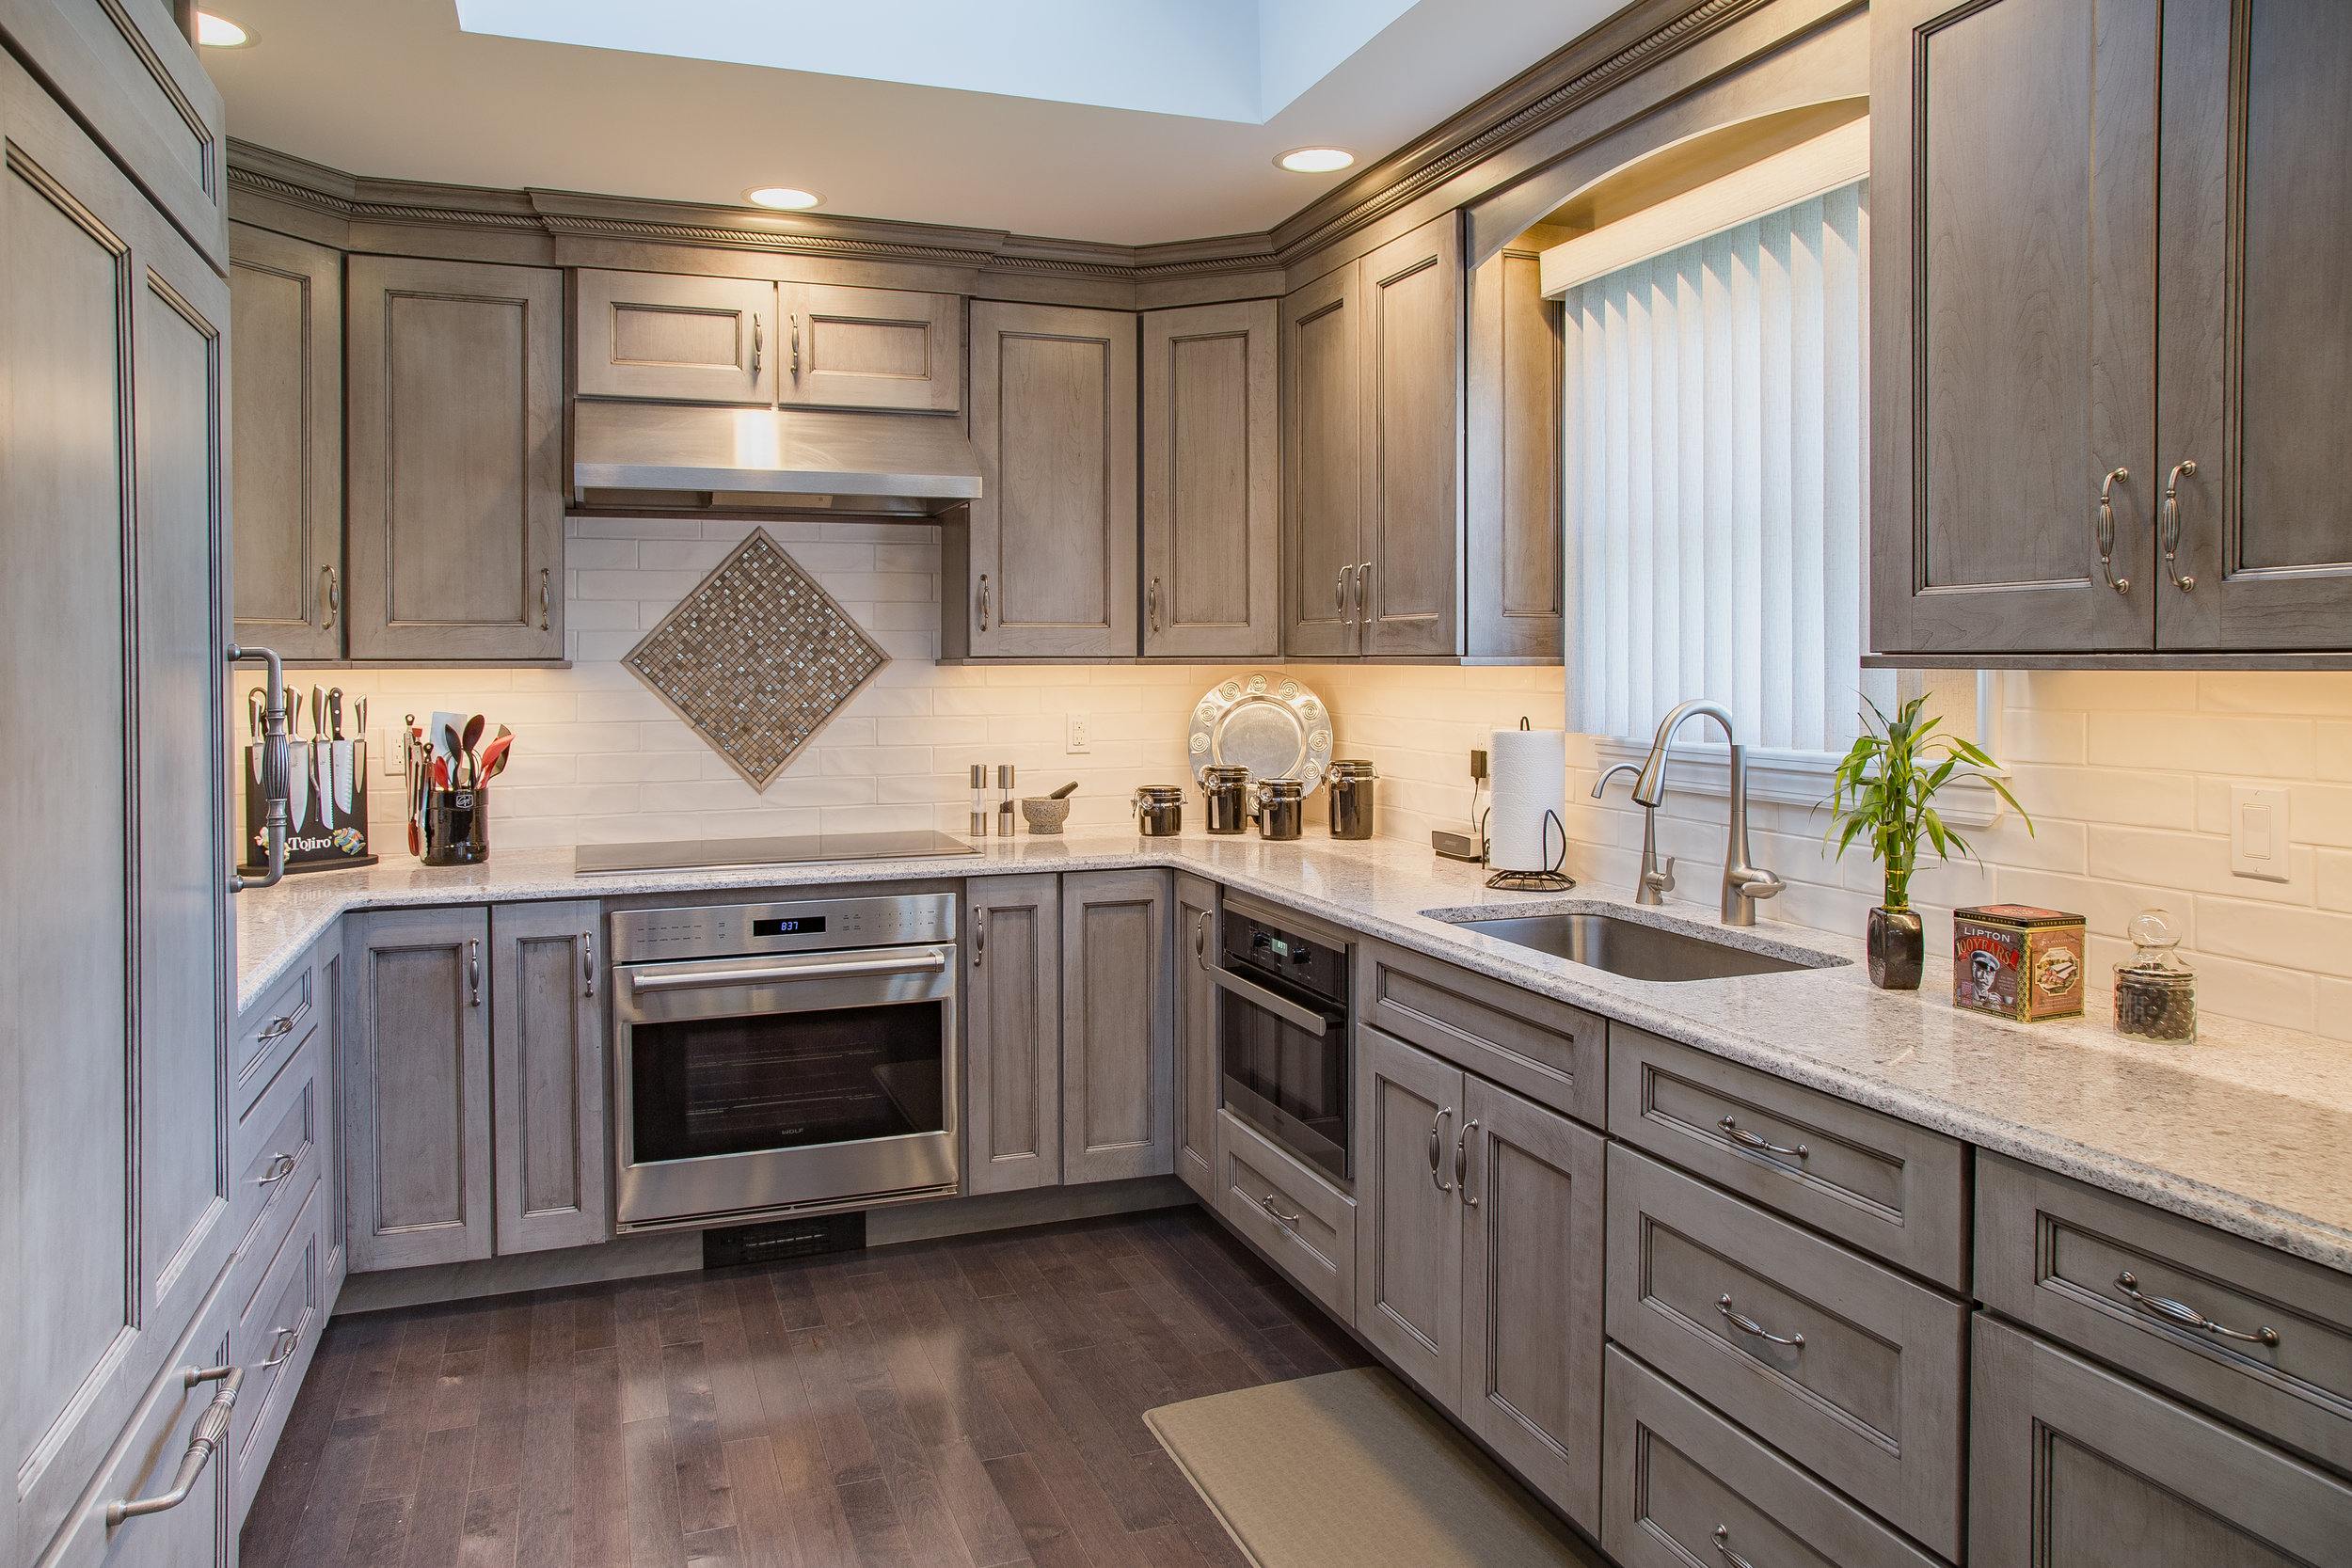 pepporcorn-grey-cabinets-hardware-knobs-stove-accents